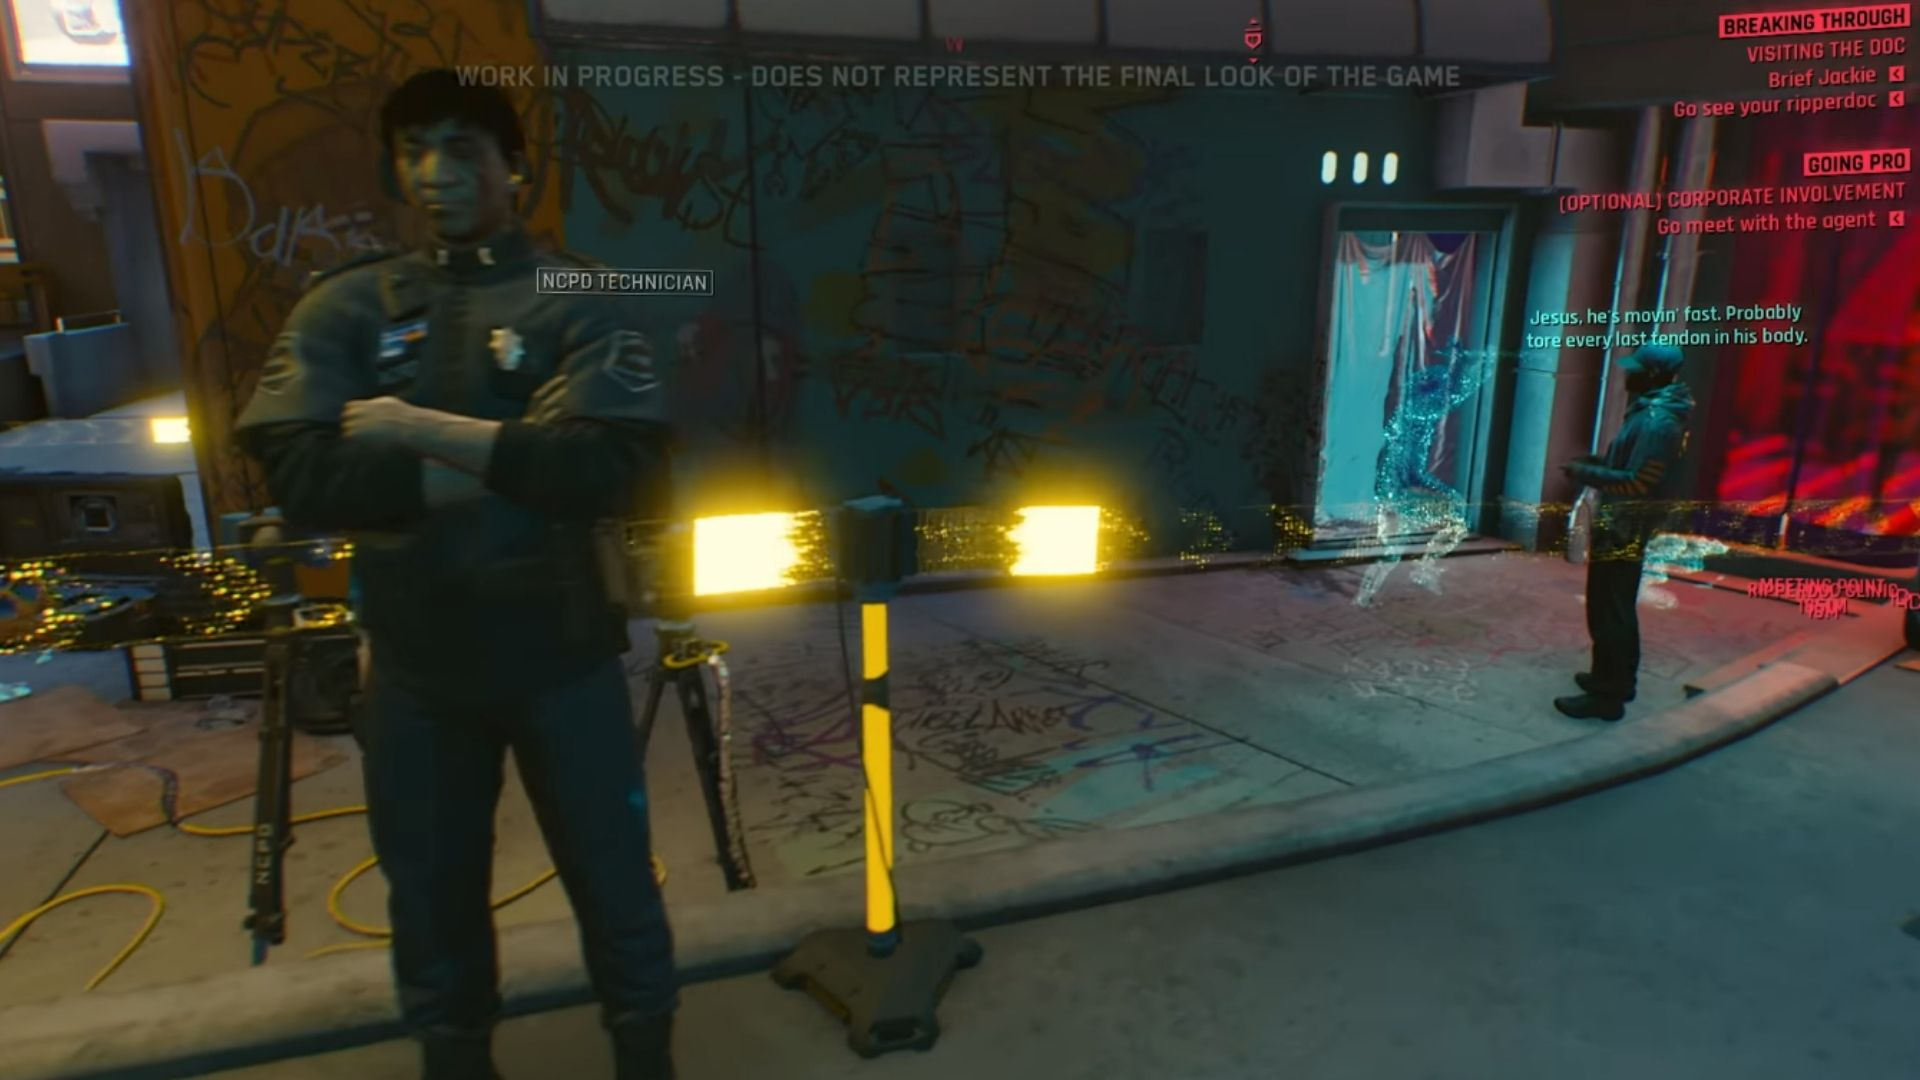 The police in the Cyberpunk demo, not attacking V on sight, seemingly with improved A.I.